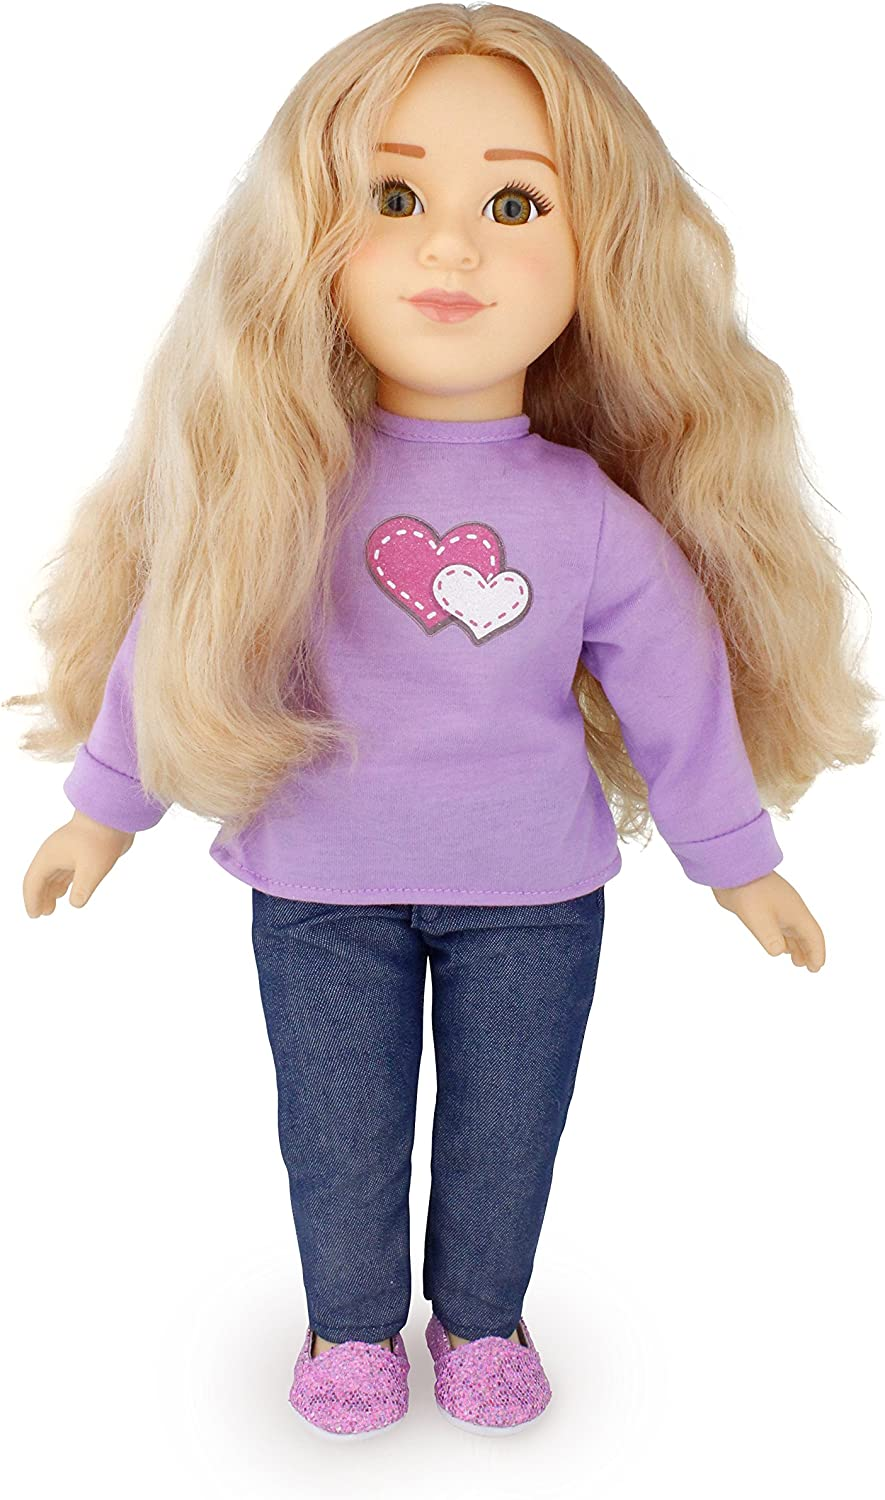 Positively Perfect Caucasian Same day shipping 18IN Max 55% OFF - Chloe Doll